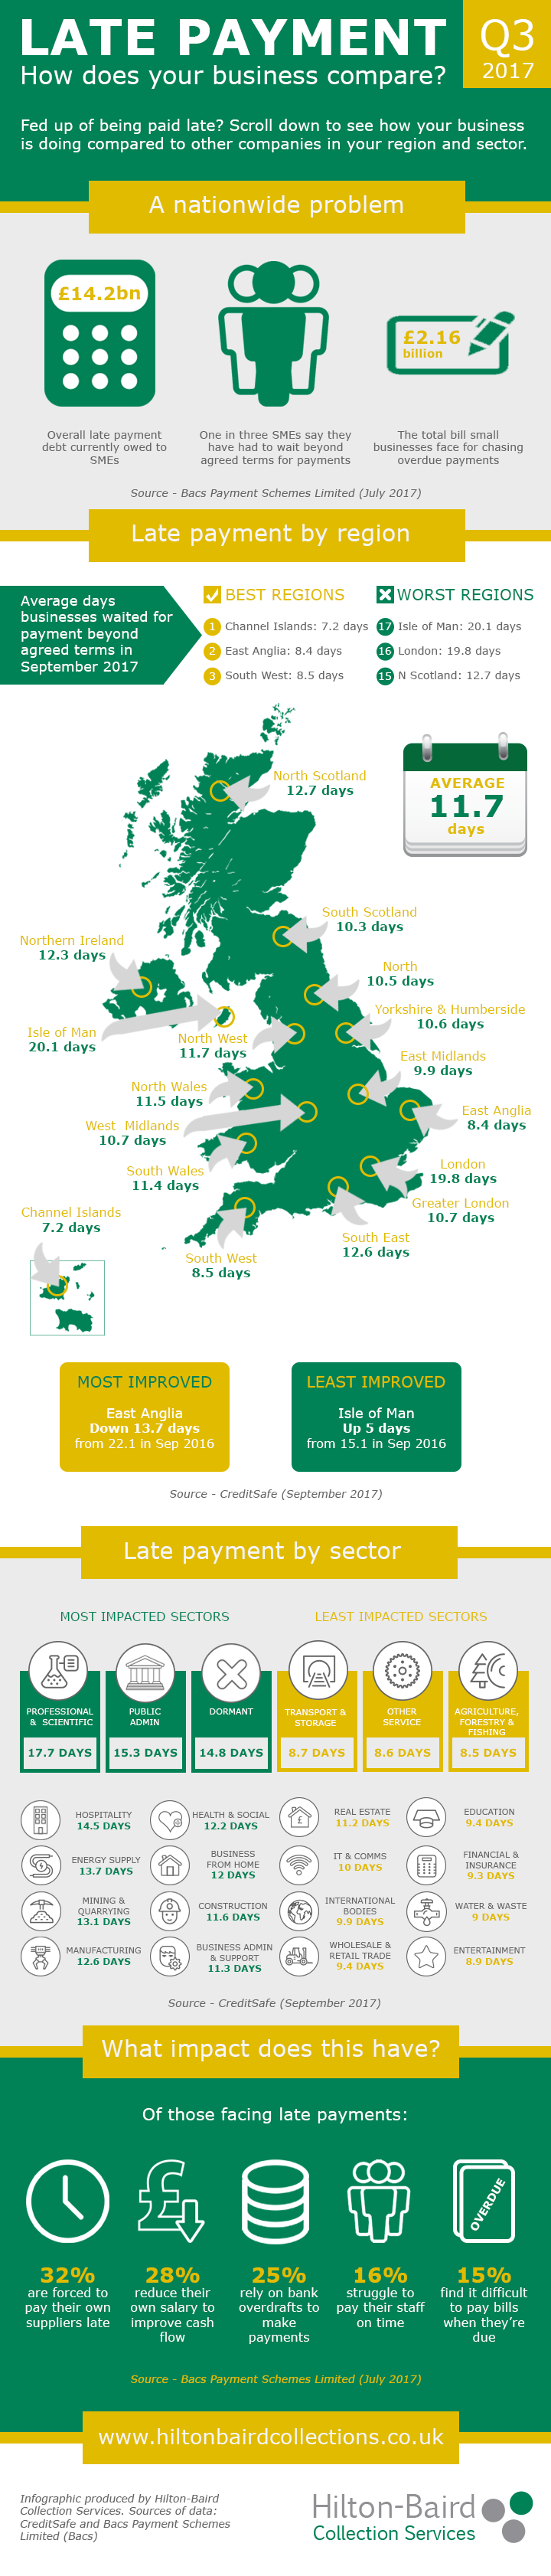 Late payment - How does your business compare (infographic)